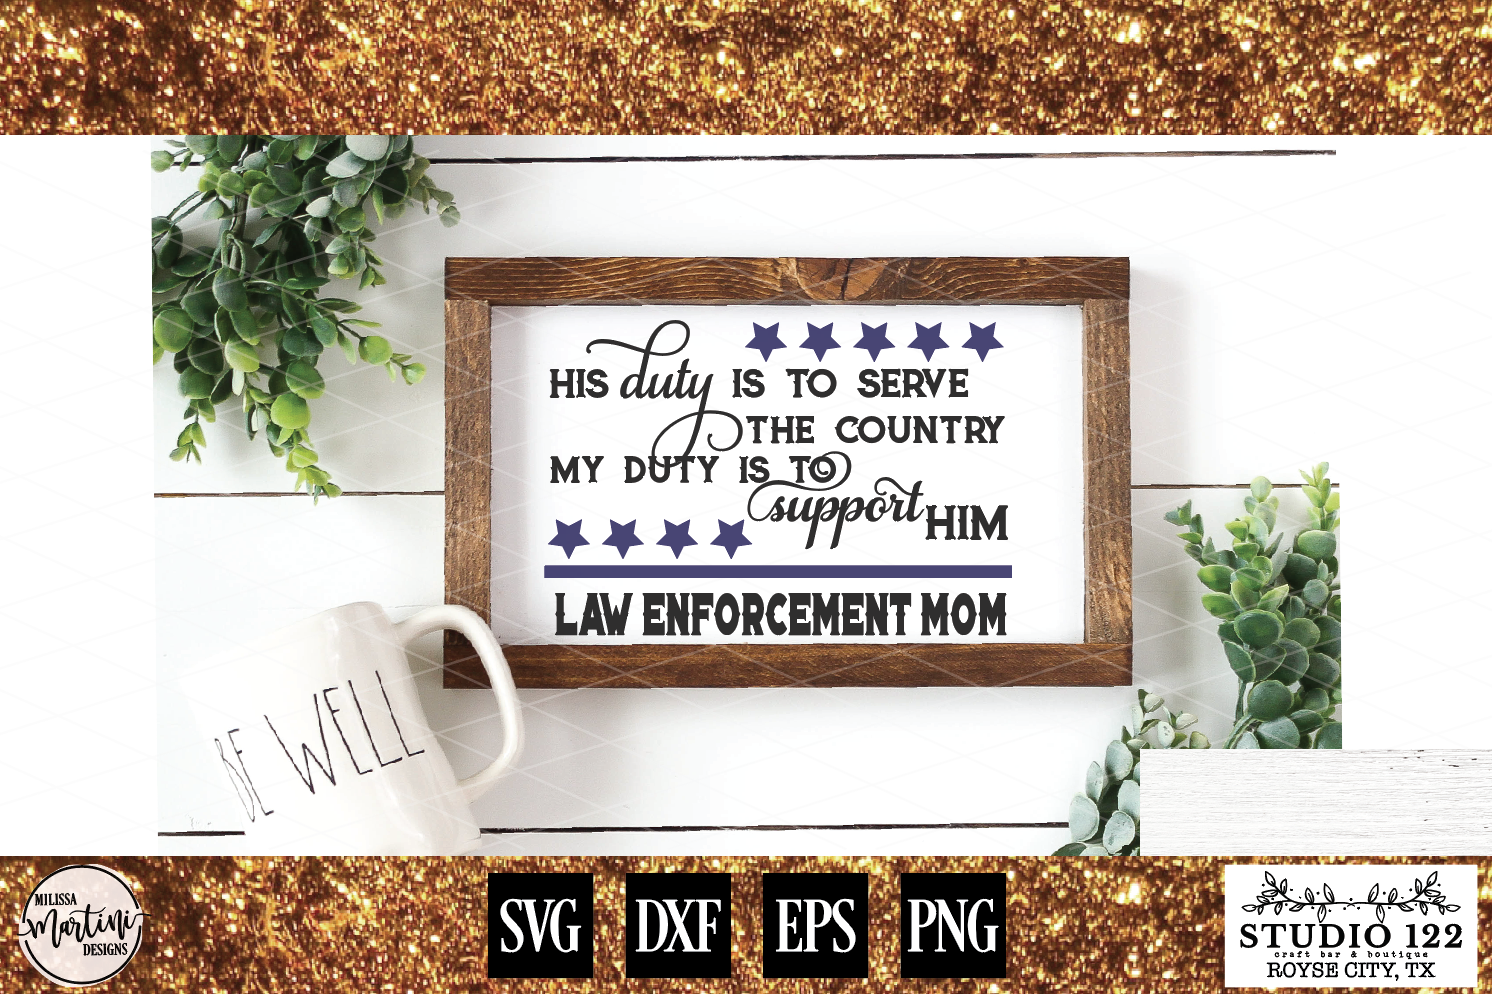 LAW ENFORCEMENT MOM example image 1